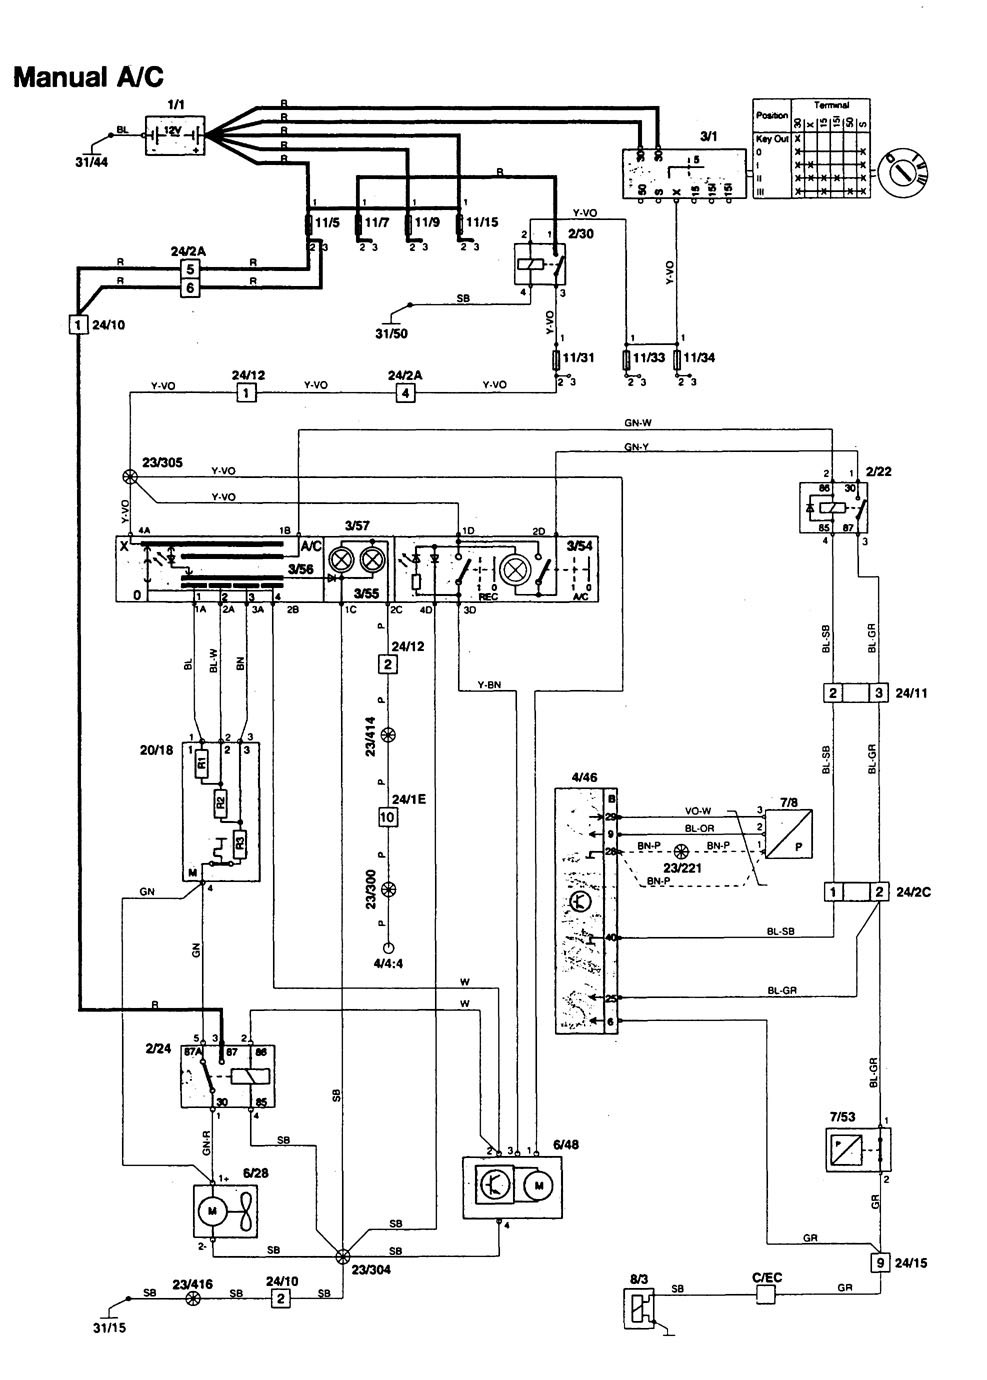 Volvo 850 1997 Wiring Diagrams Heater Carknowledge Diagram